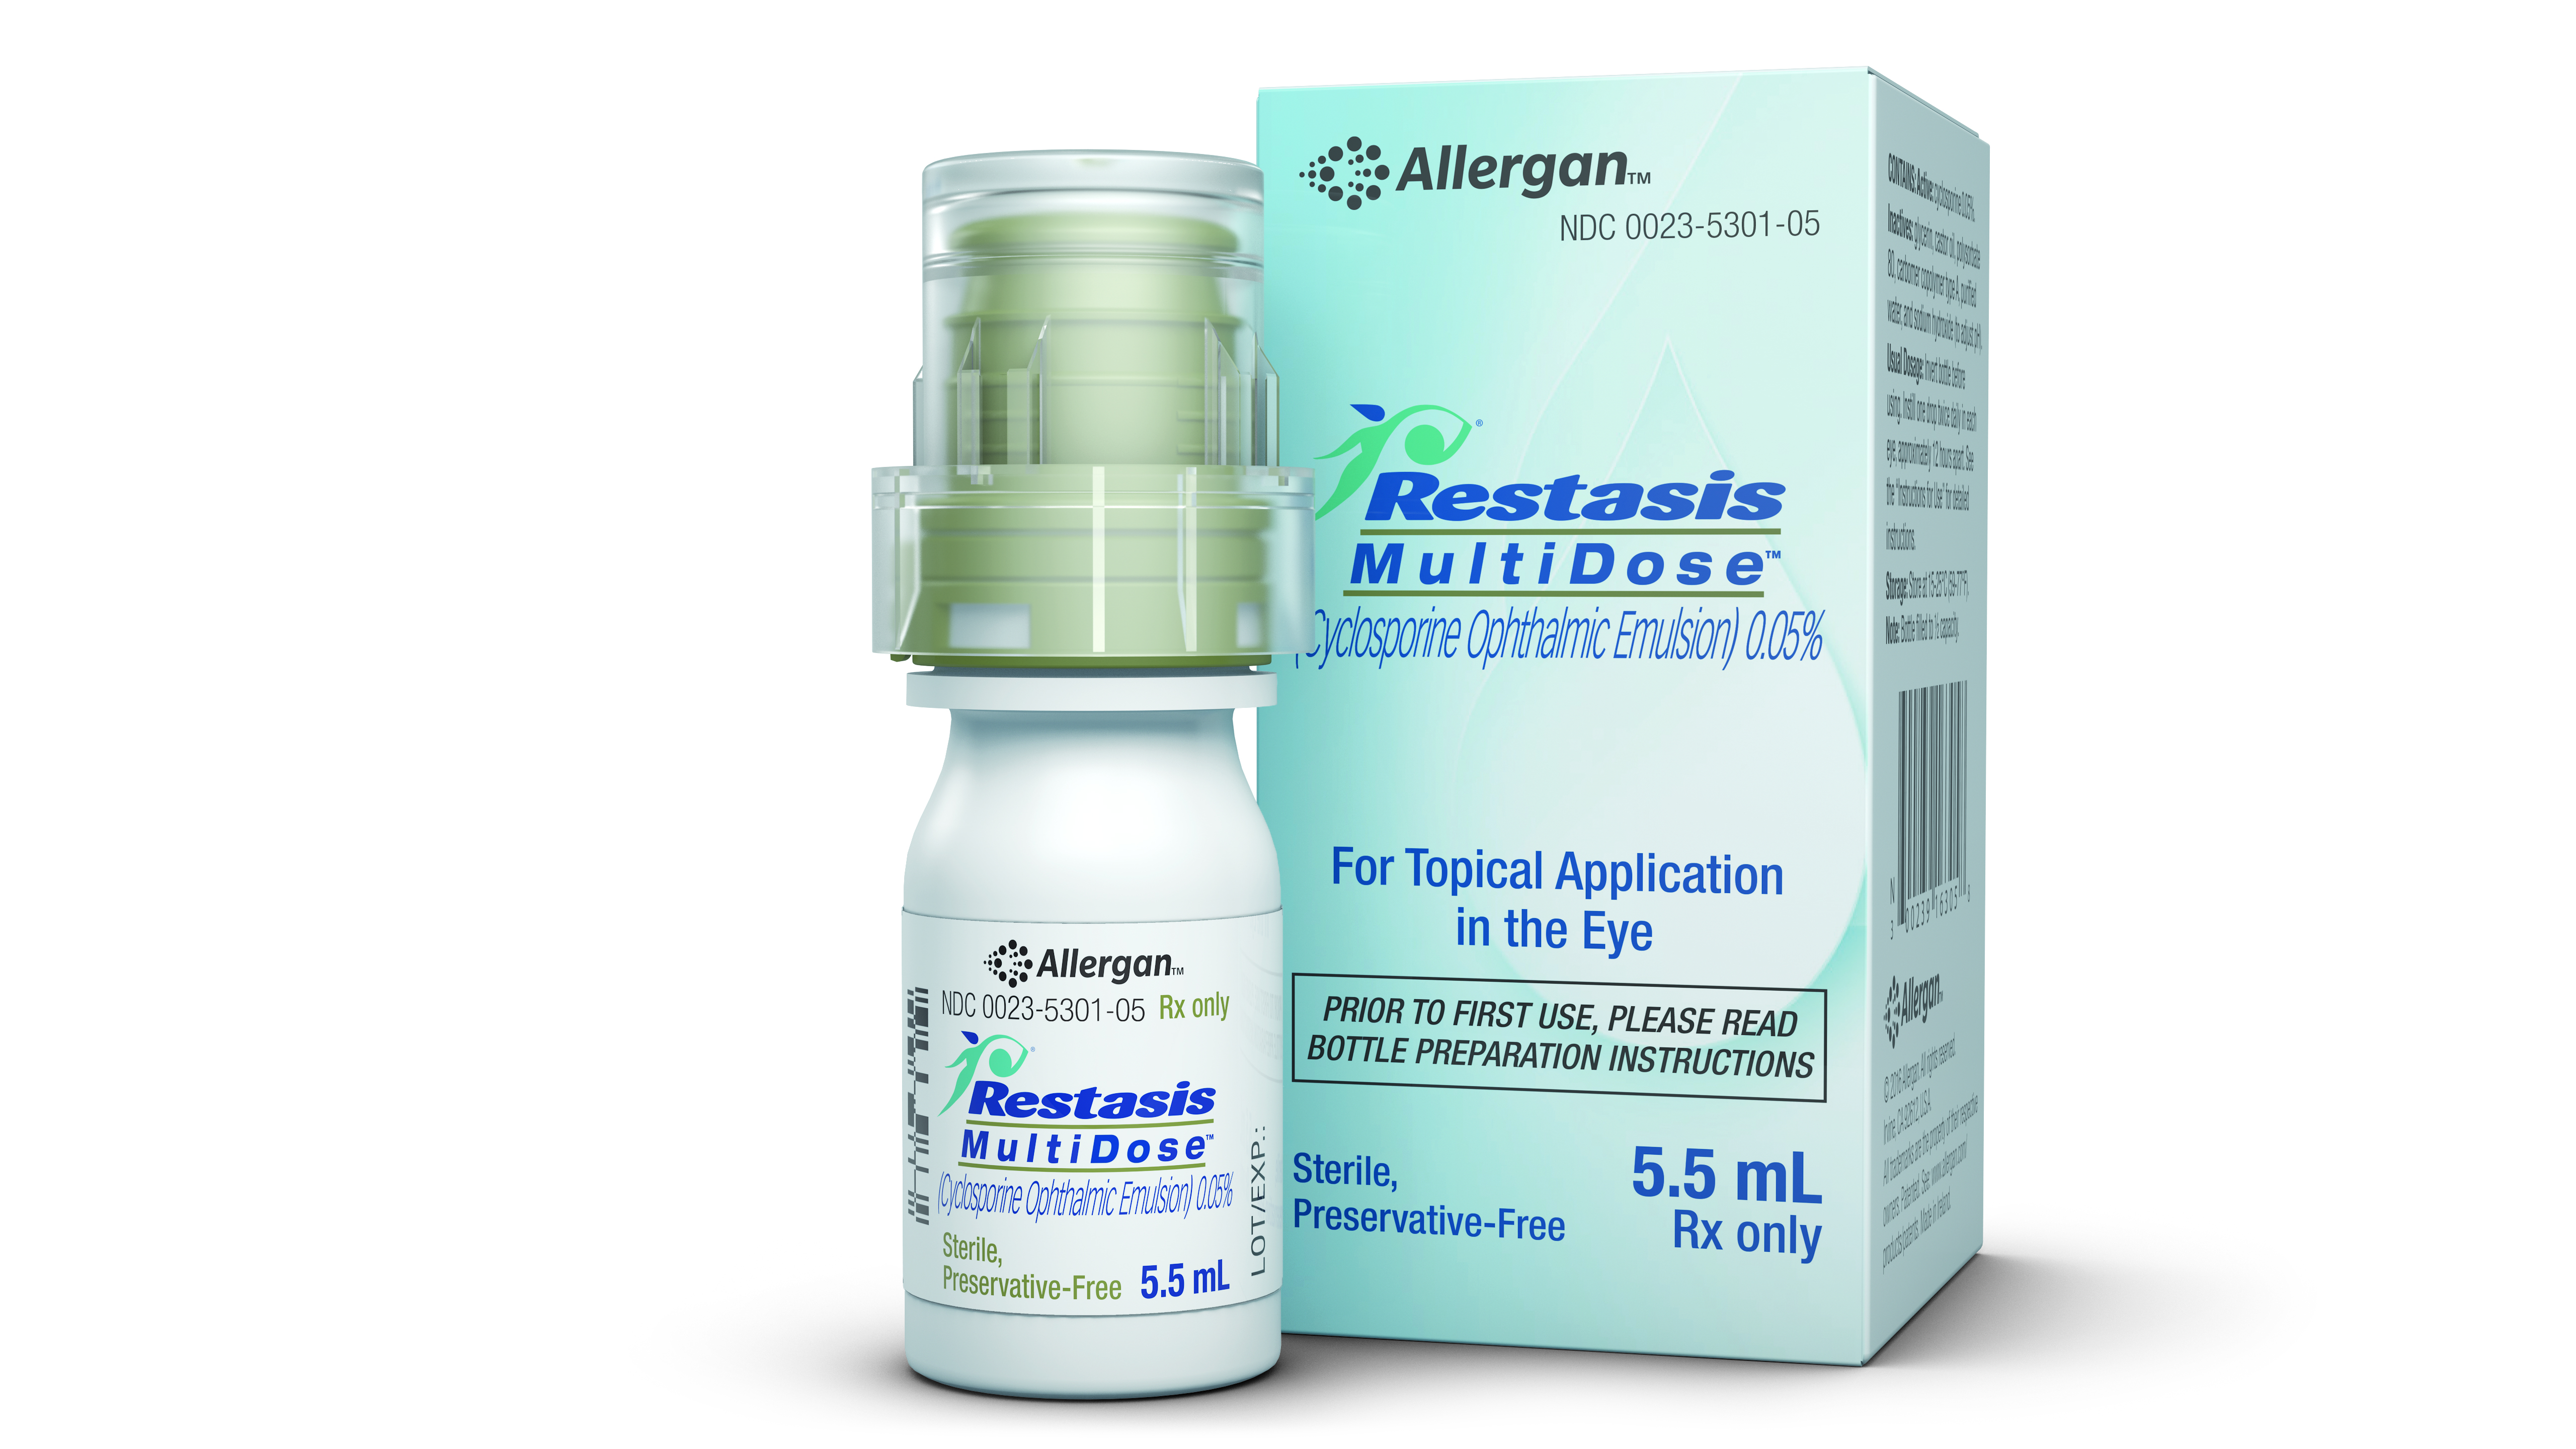 Eyewire Today | Allergan Announces Availability of